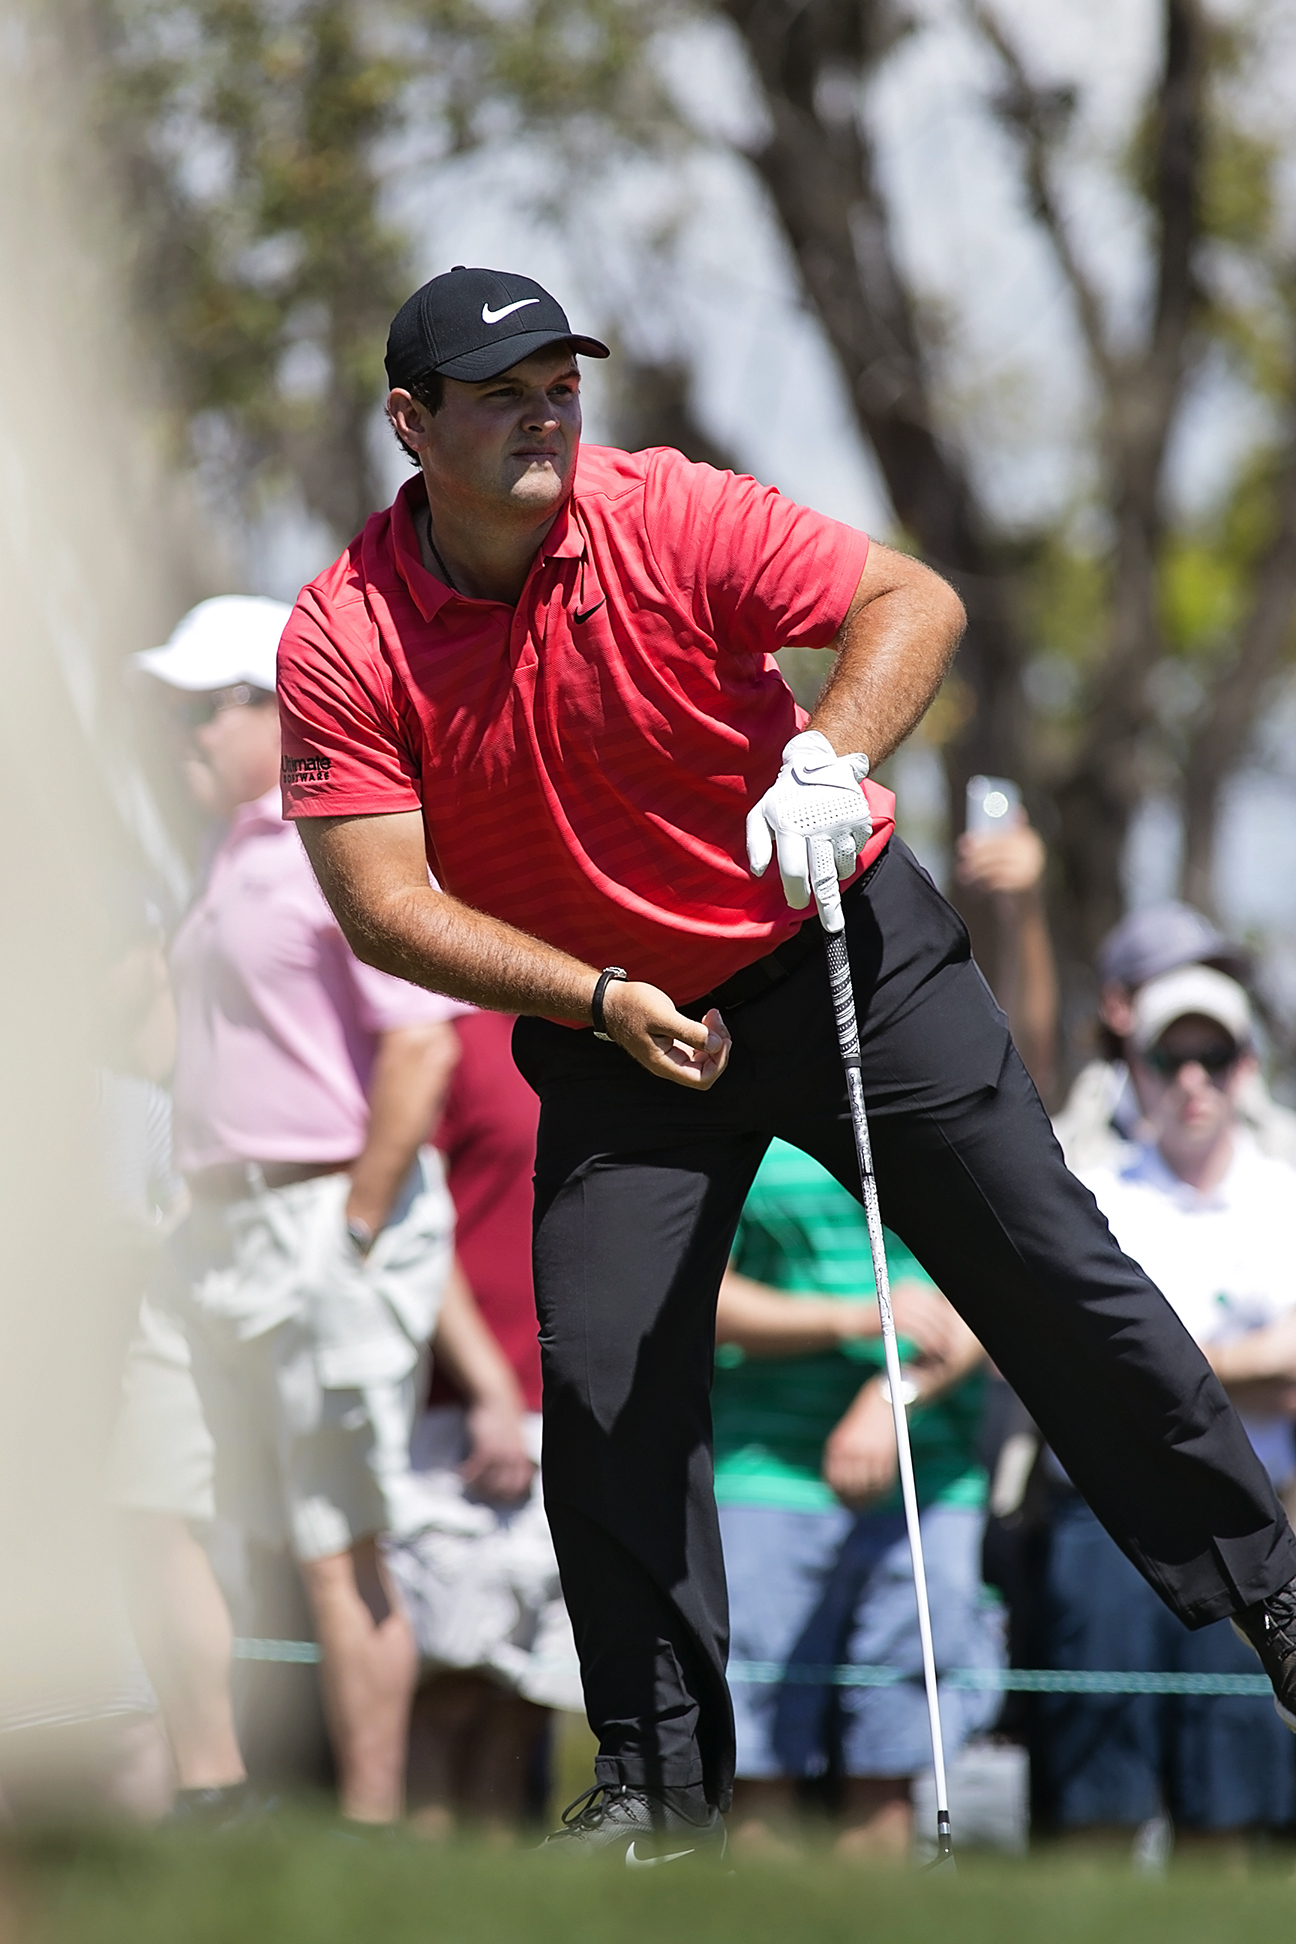 Patrick Reed shot a final-round 68 to get into a tie for second./CARMEN MANDATO